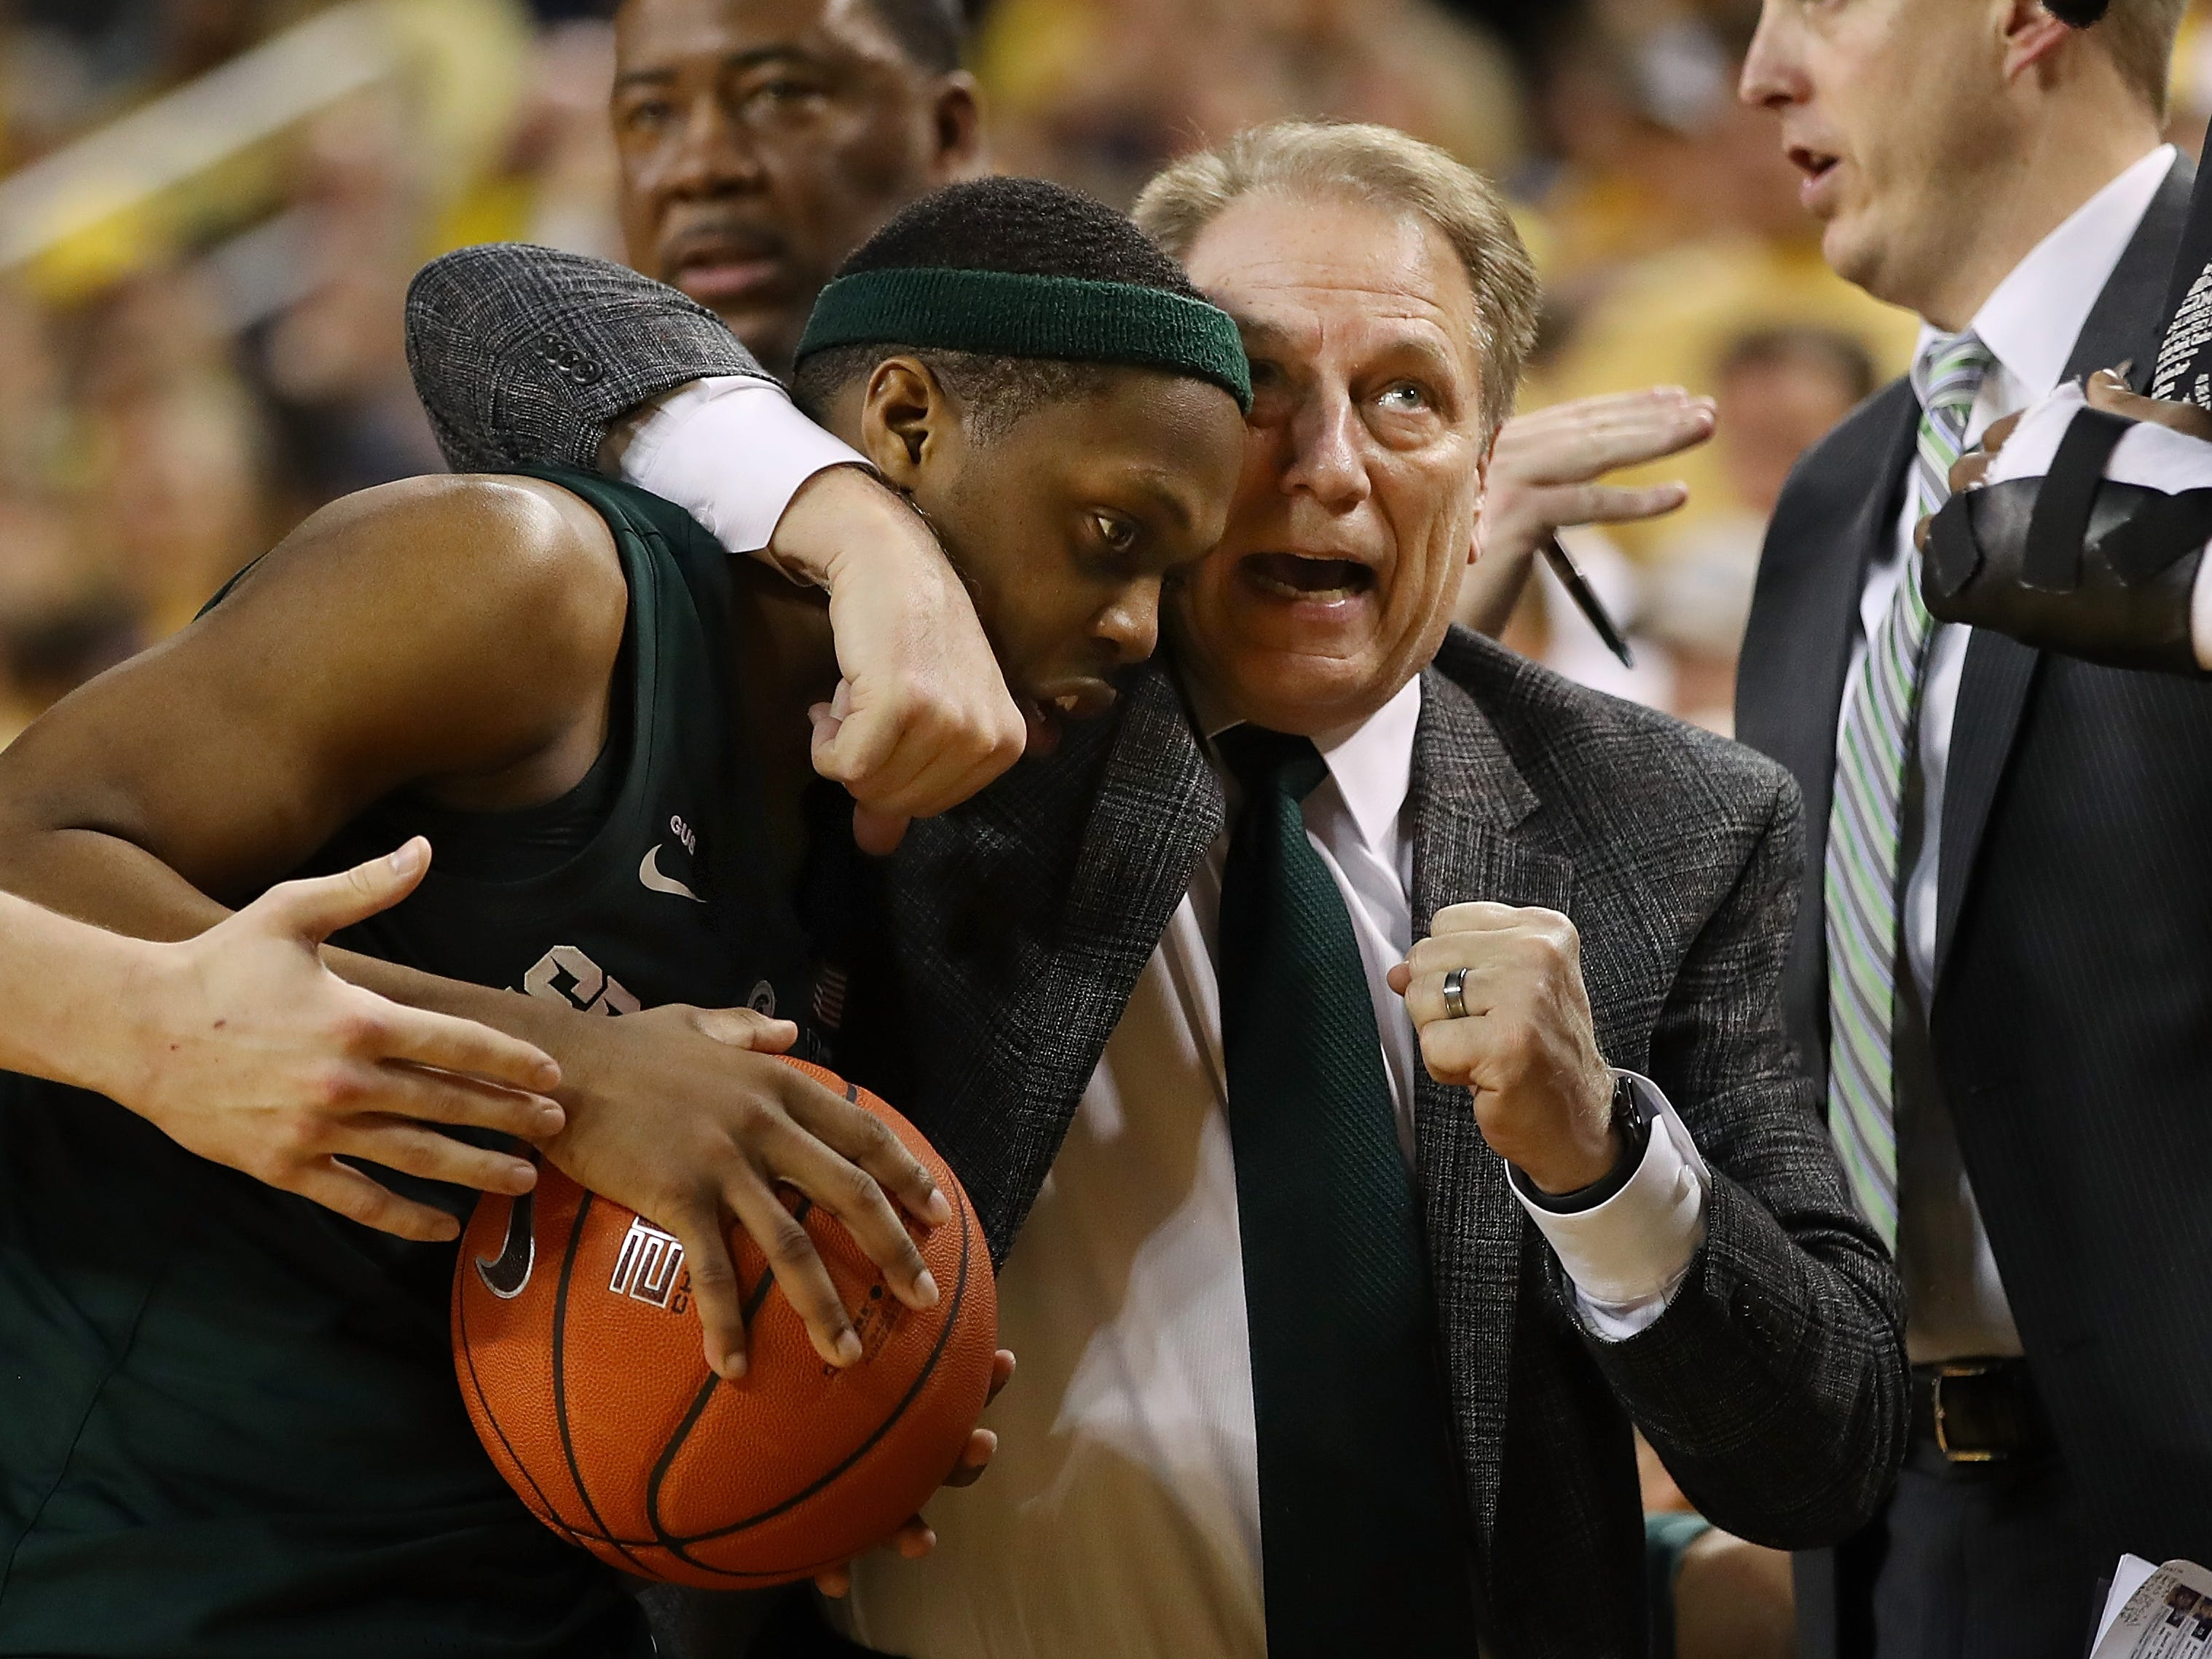 Cassius Winston #5 of the Michigan State Spartans and head coach Tom Izzo react while playing the Michigan Wolverines at Crisler Arena on February 24, 2019 in Ann Arbor, Michigan. Michigan State won the game 77-70.